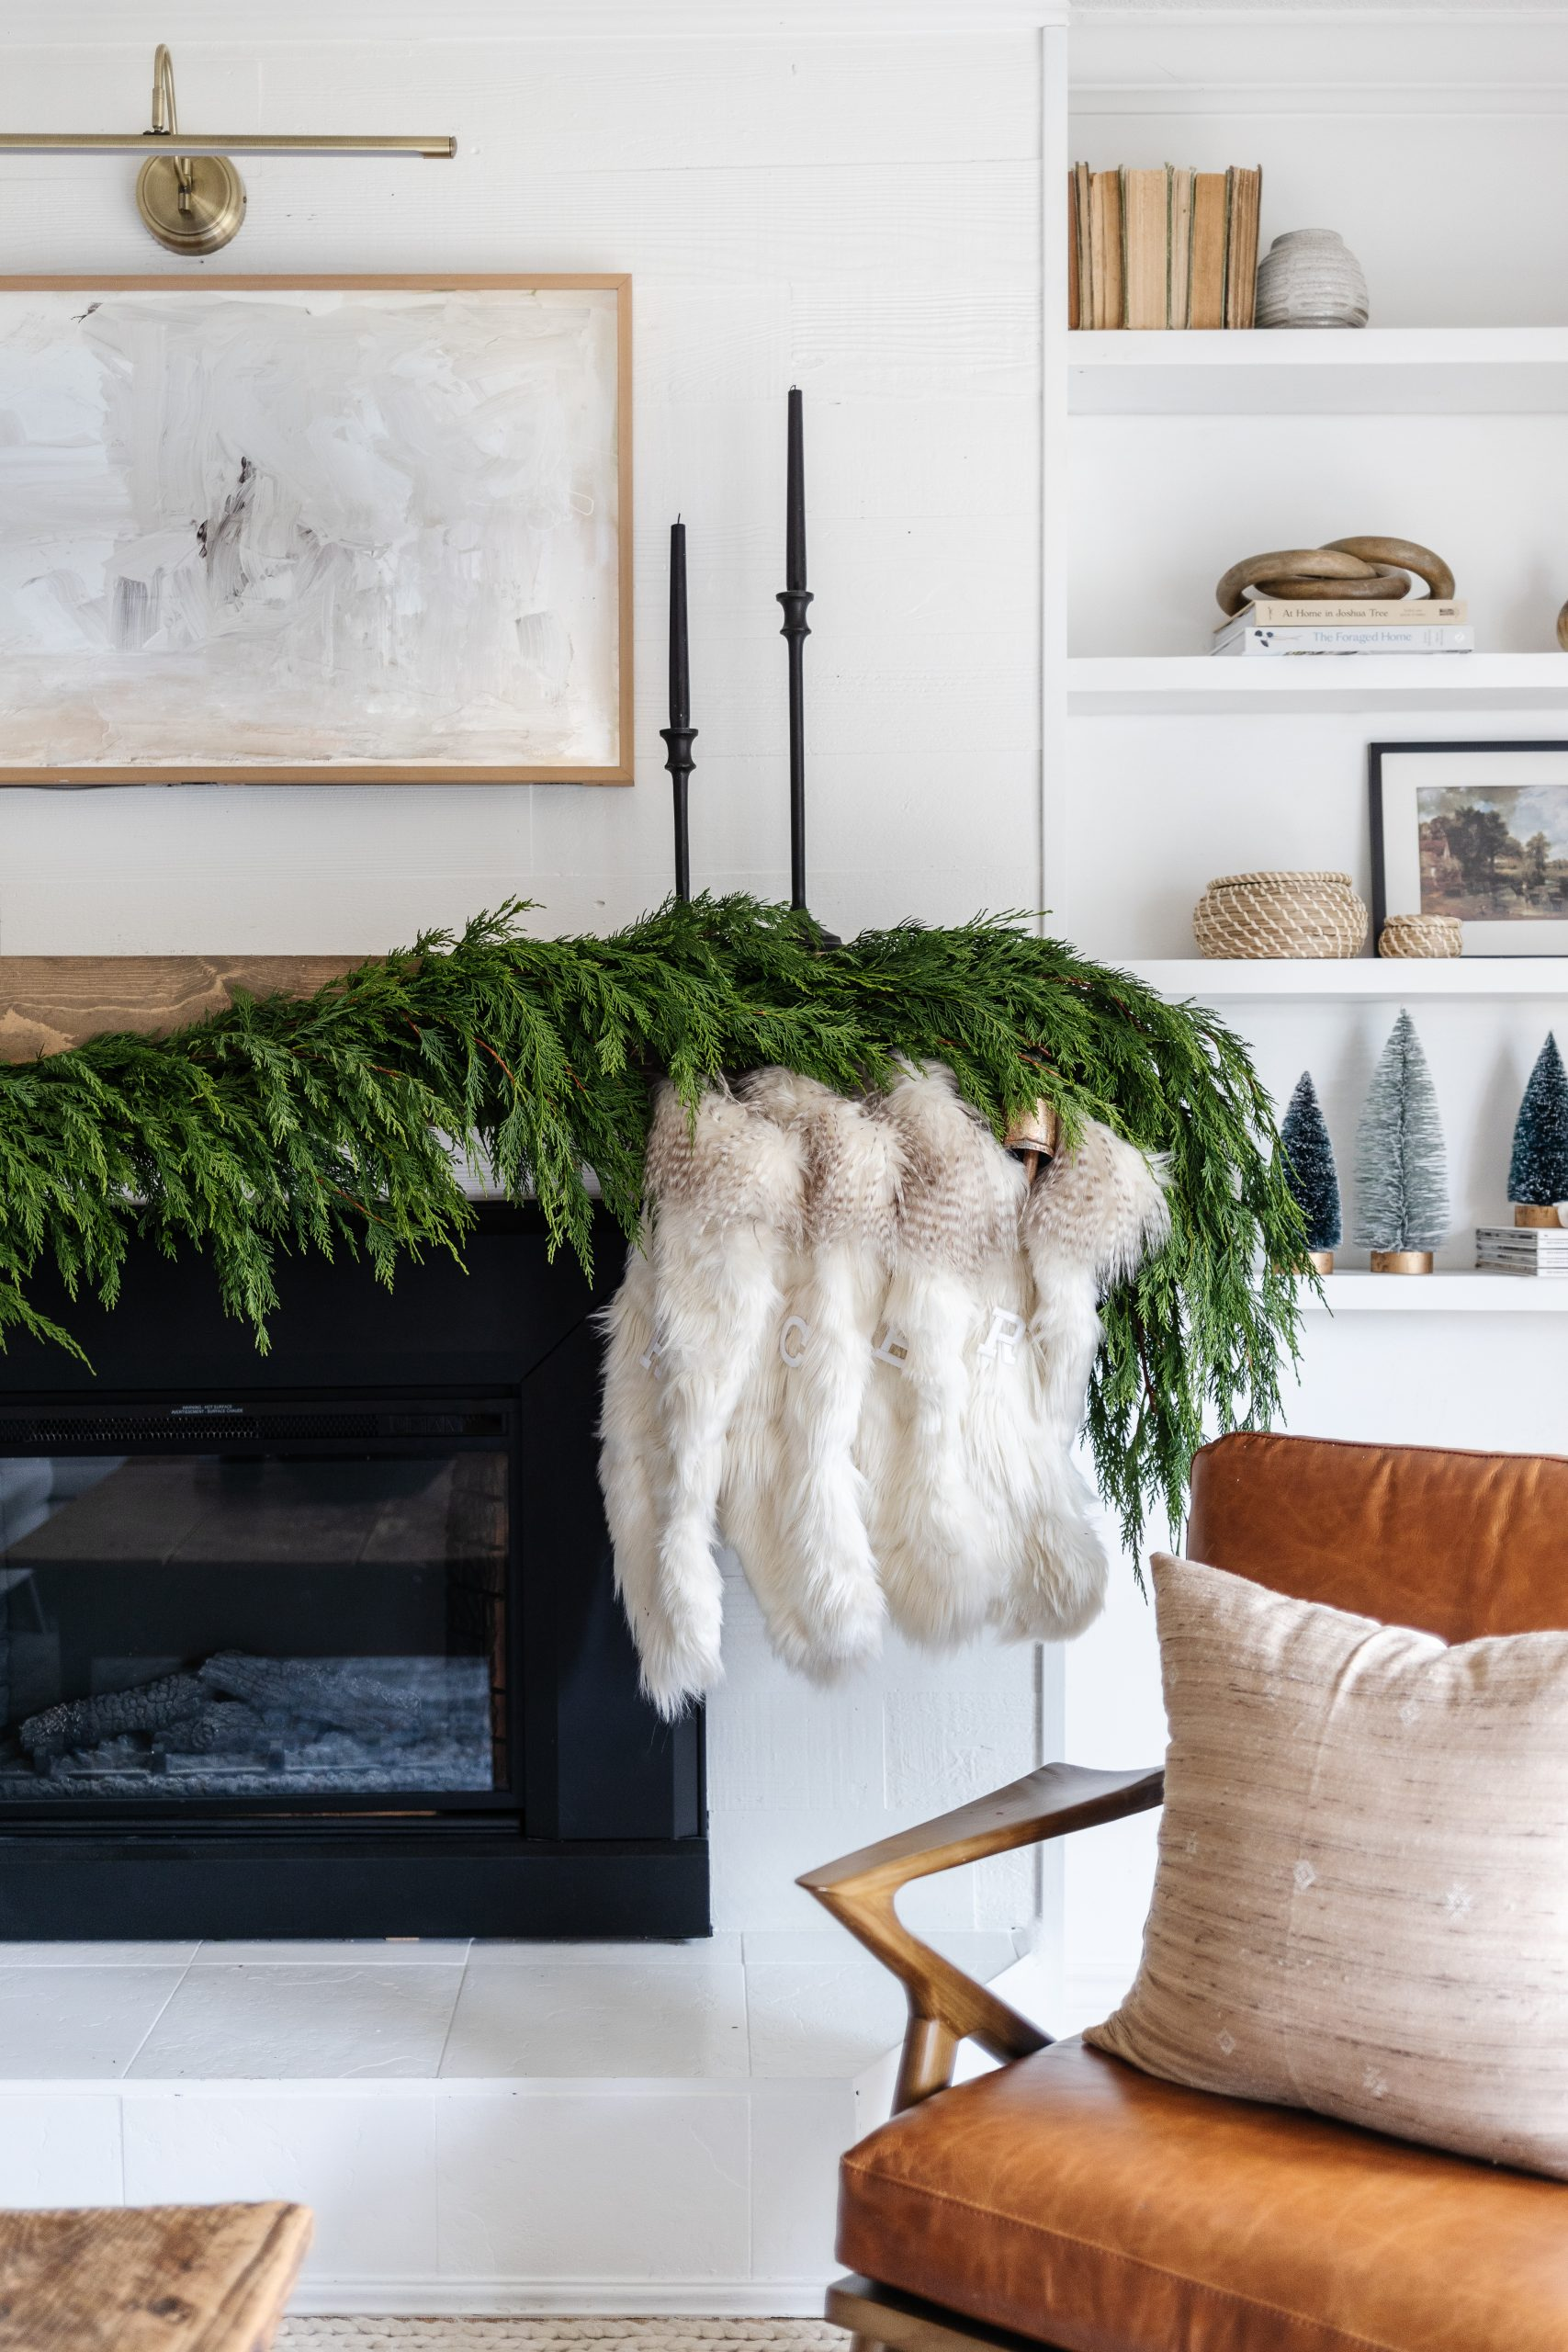 How To Make Your Own Real Christmas Garland and How To Attach It To Your Mantle! What kind of greenery we used and where you can find greenery if you don't have any accessible.